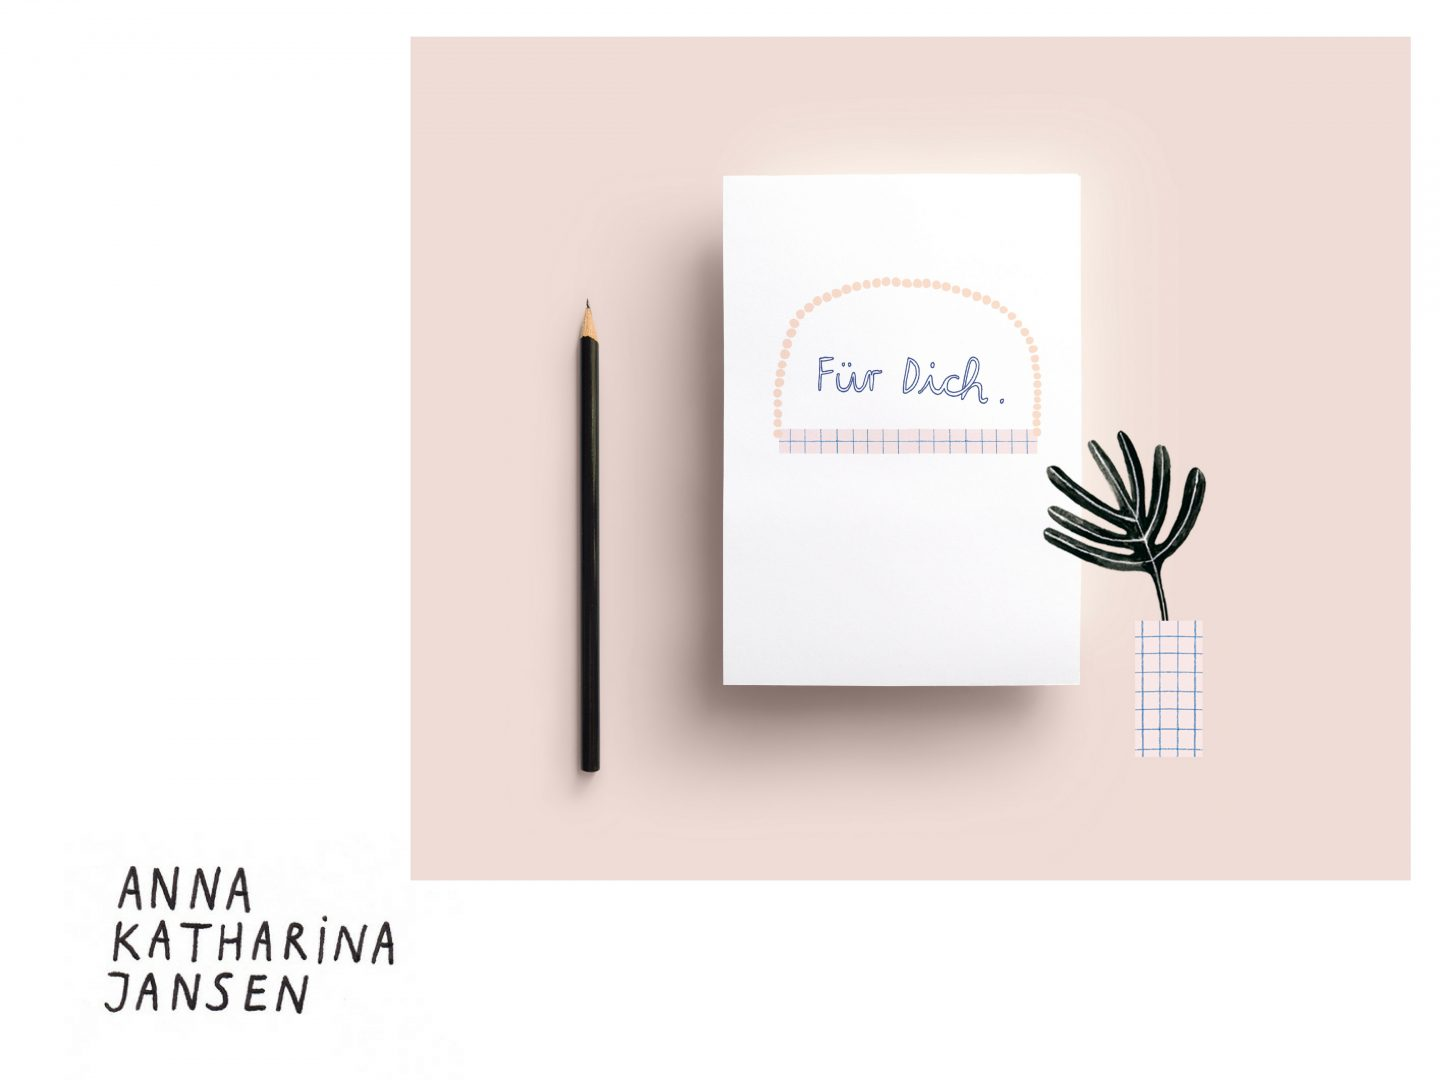 Valentines Day Favorite online shops | Anna Jansen Illustration